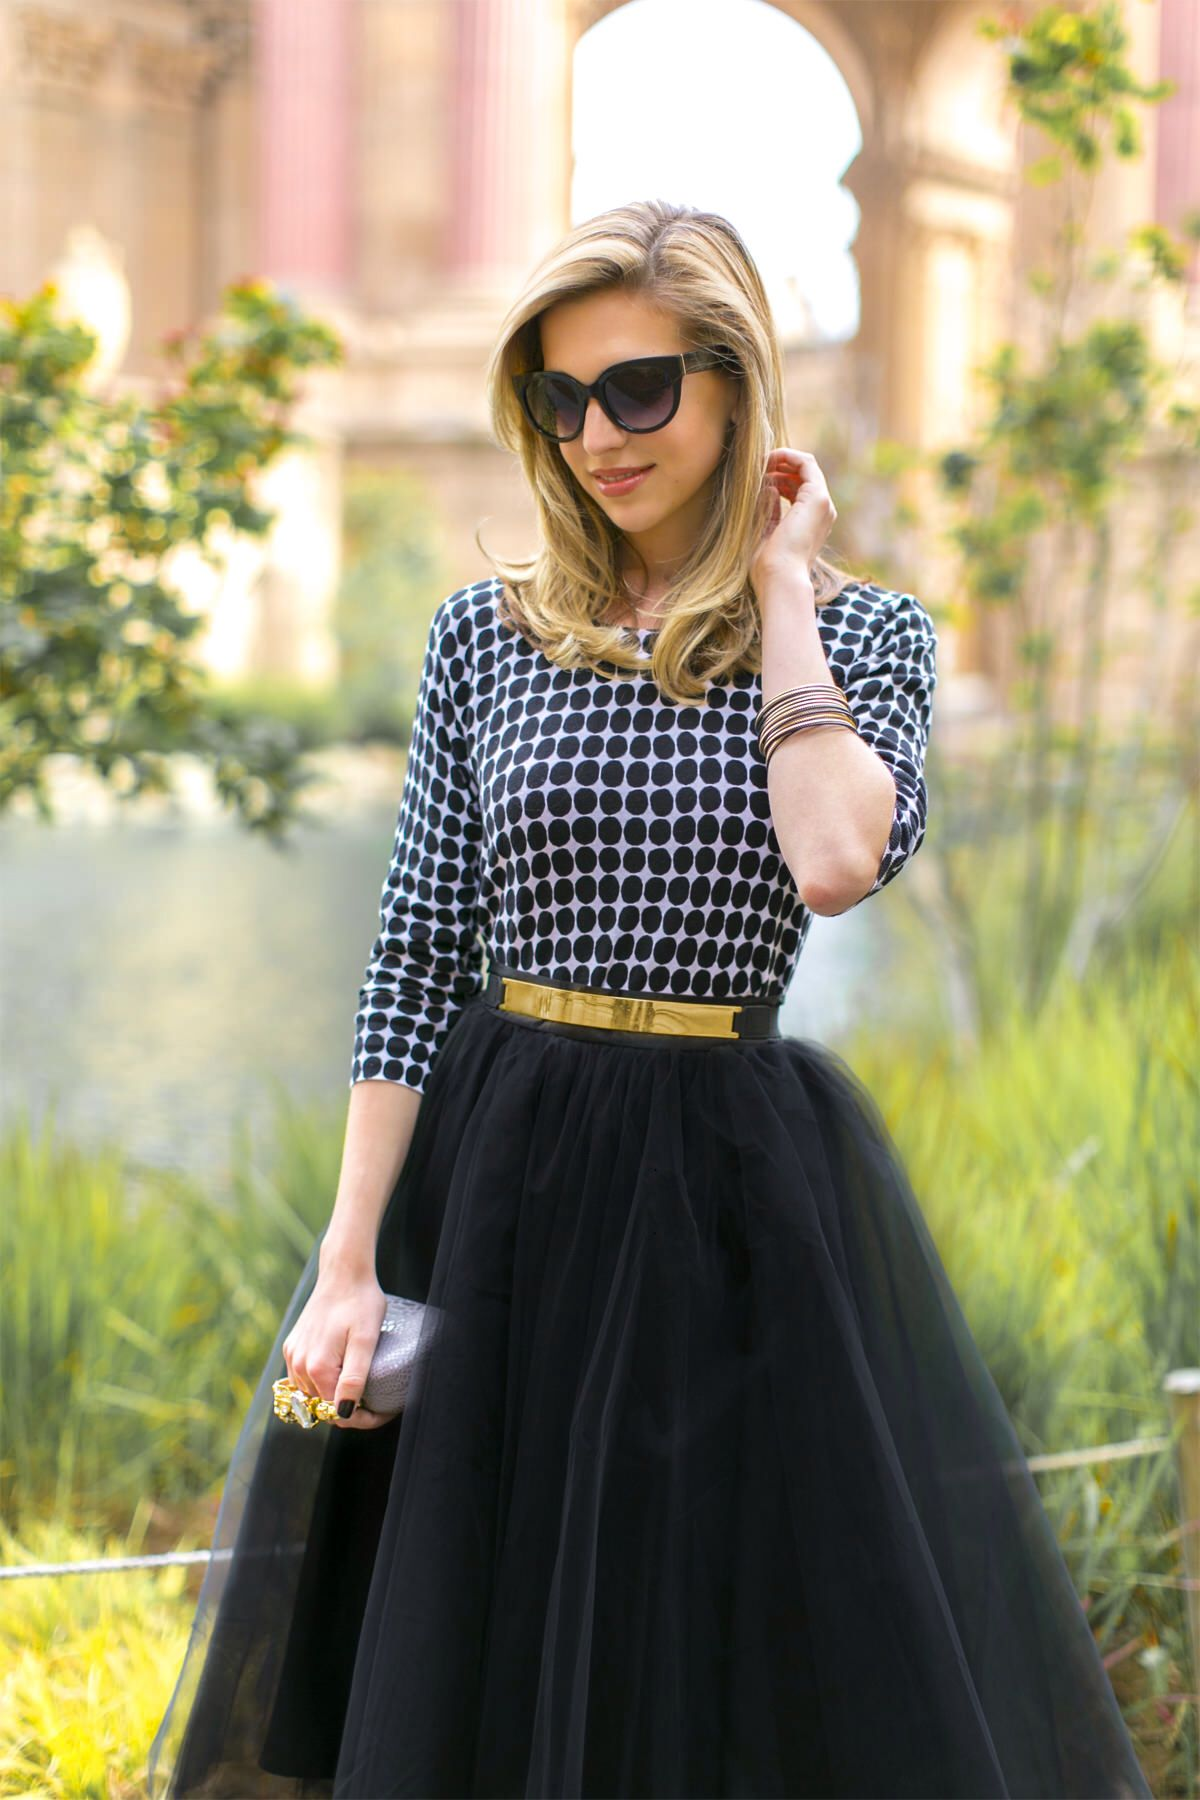 Space 46 black midi tulle skirt, blogger vanillaextract.me, ladylike classy outfit